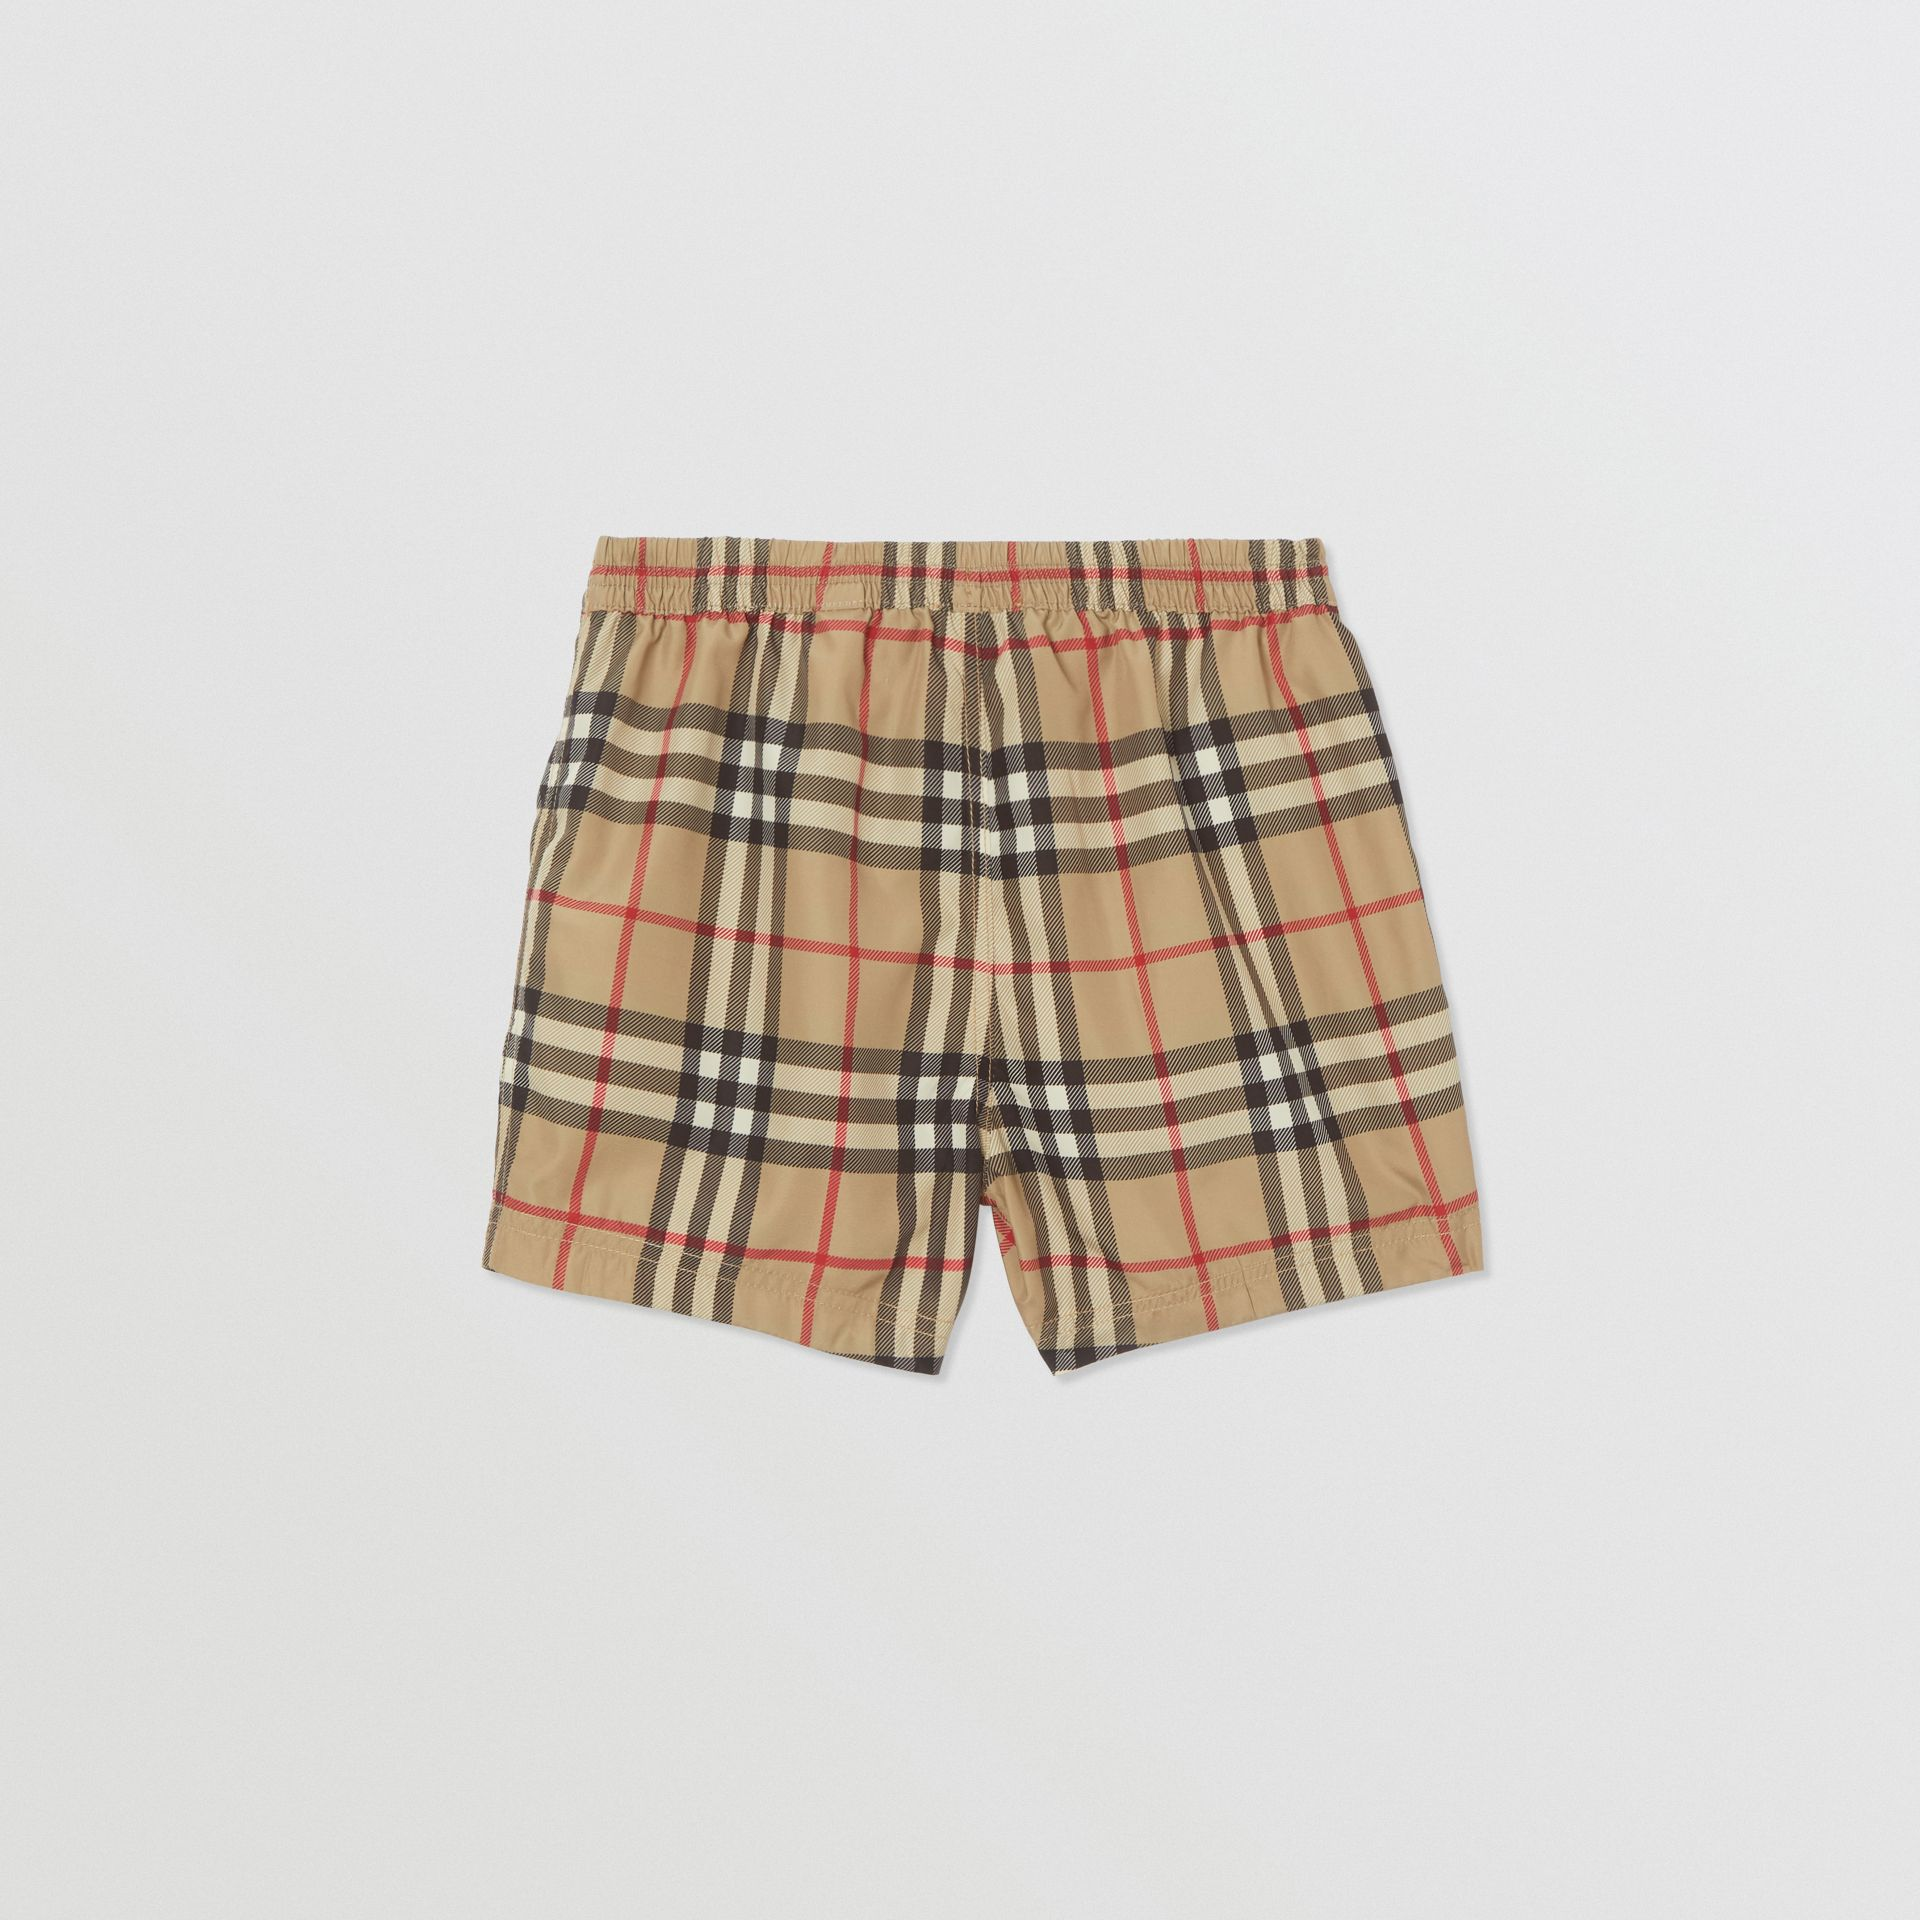 Logo Appliqué Vintage Check Swim Shorts in Archive Beige - Children | Burberry United States - gallery image 3